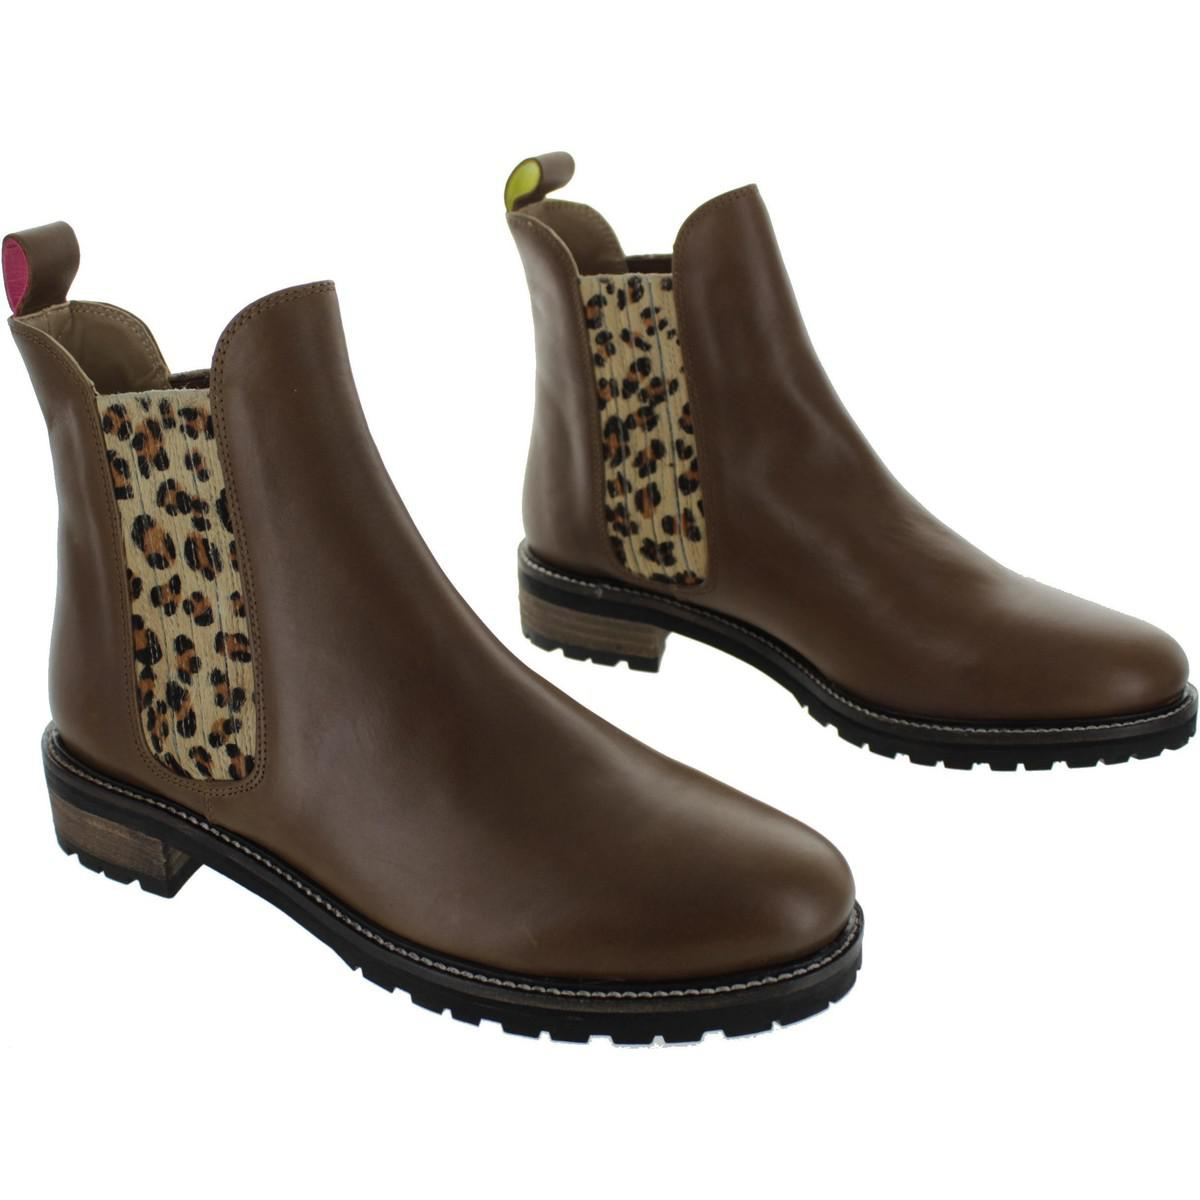 866e3e63b12 Joules Clarendon Women's Low Boots In Brown in Brown - Lyst